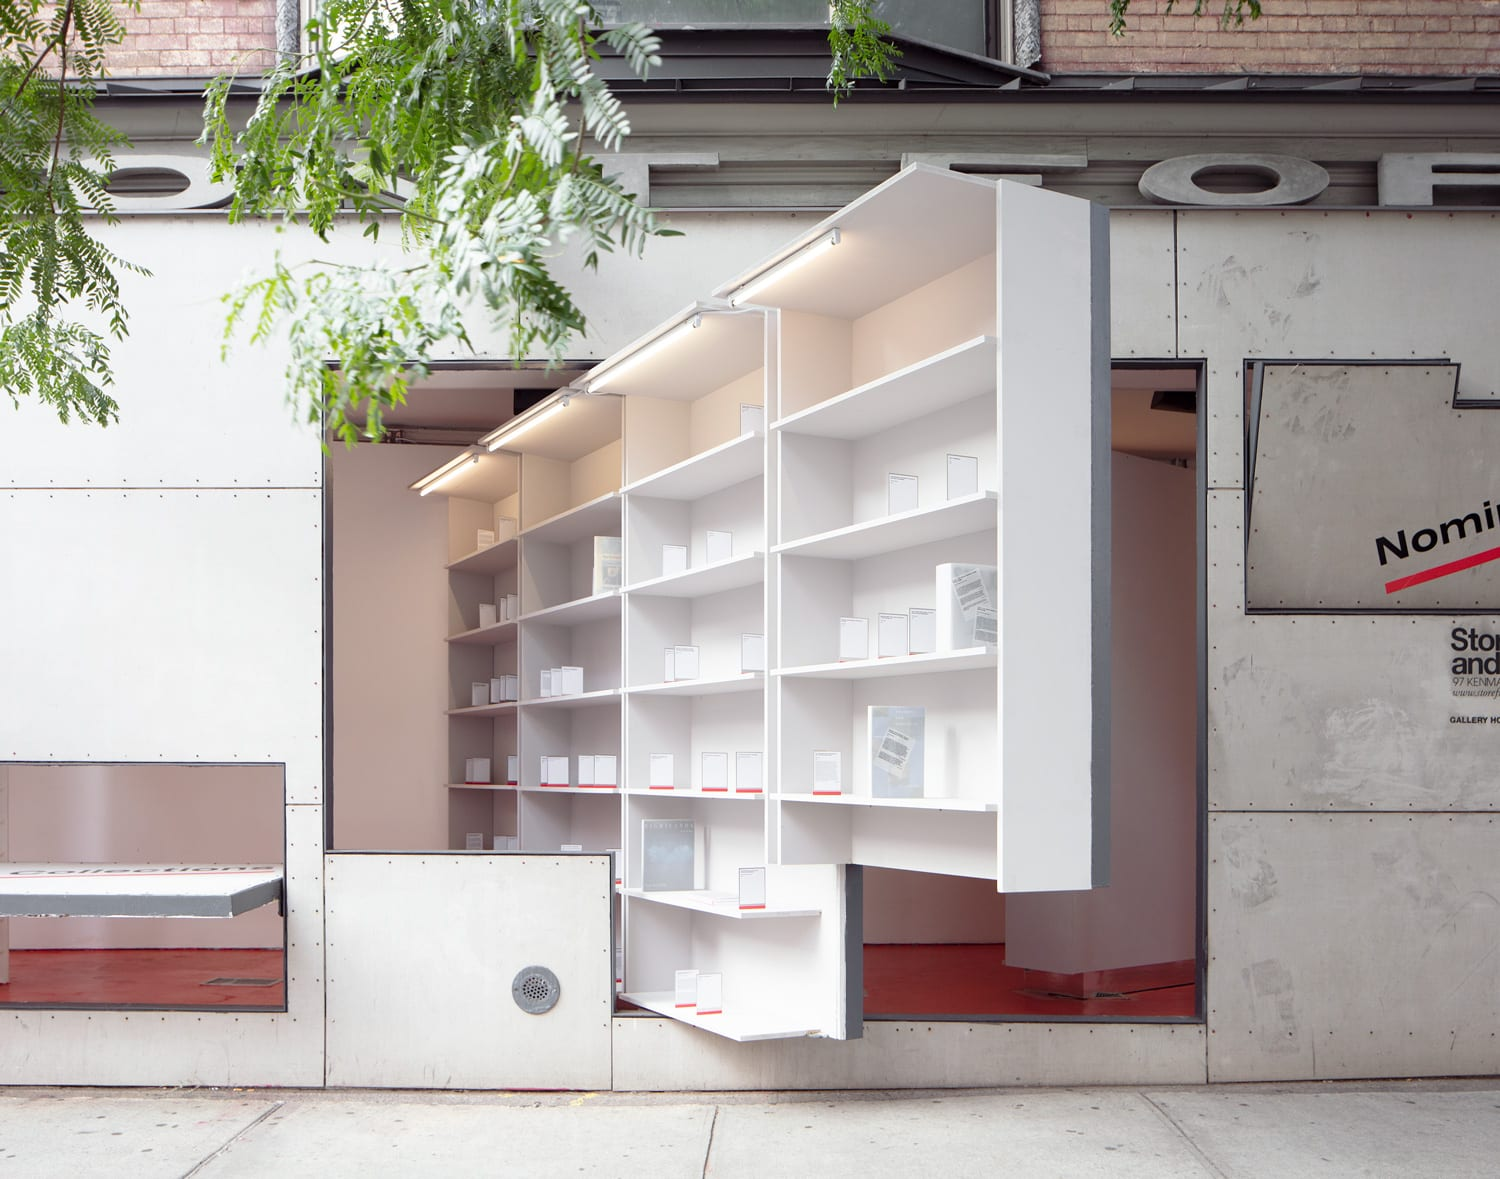 Storefront Library Installation in NYC by Abruzzo Bodziak Architects | Yellowtrace